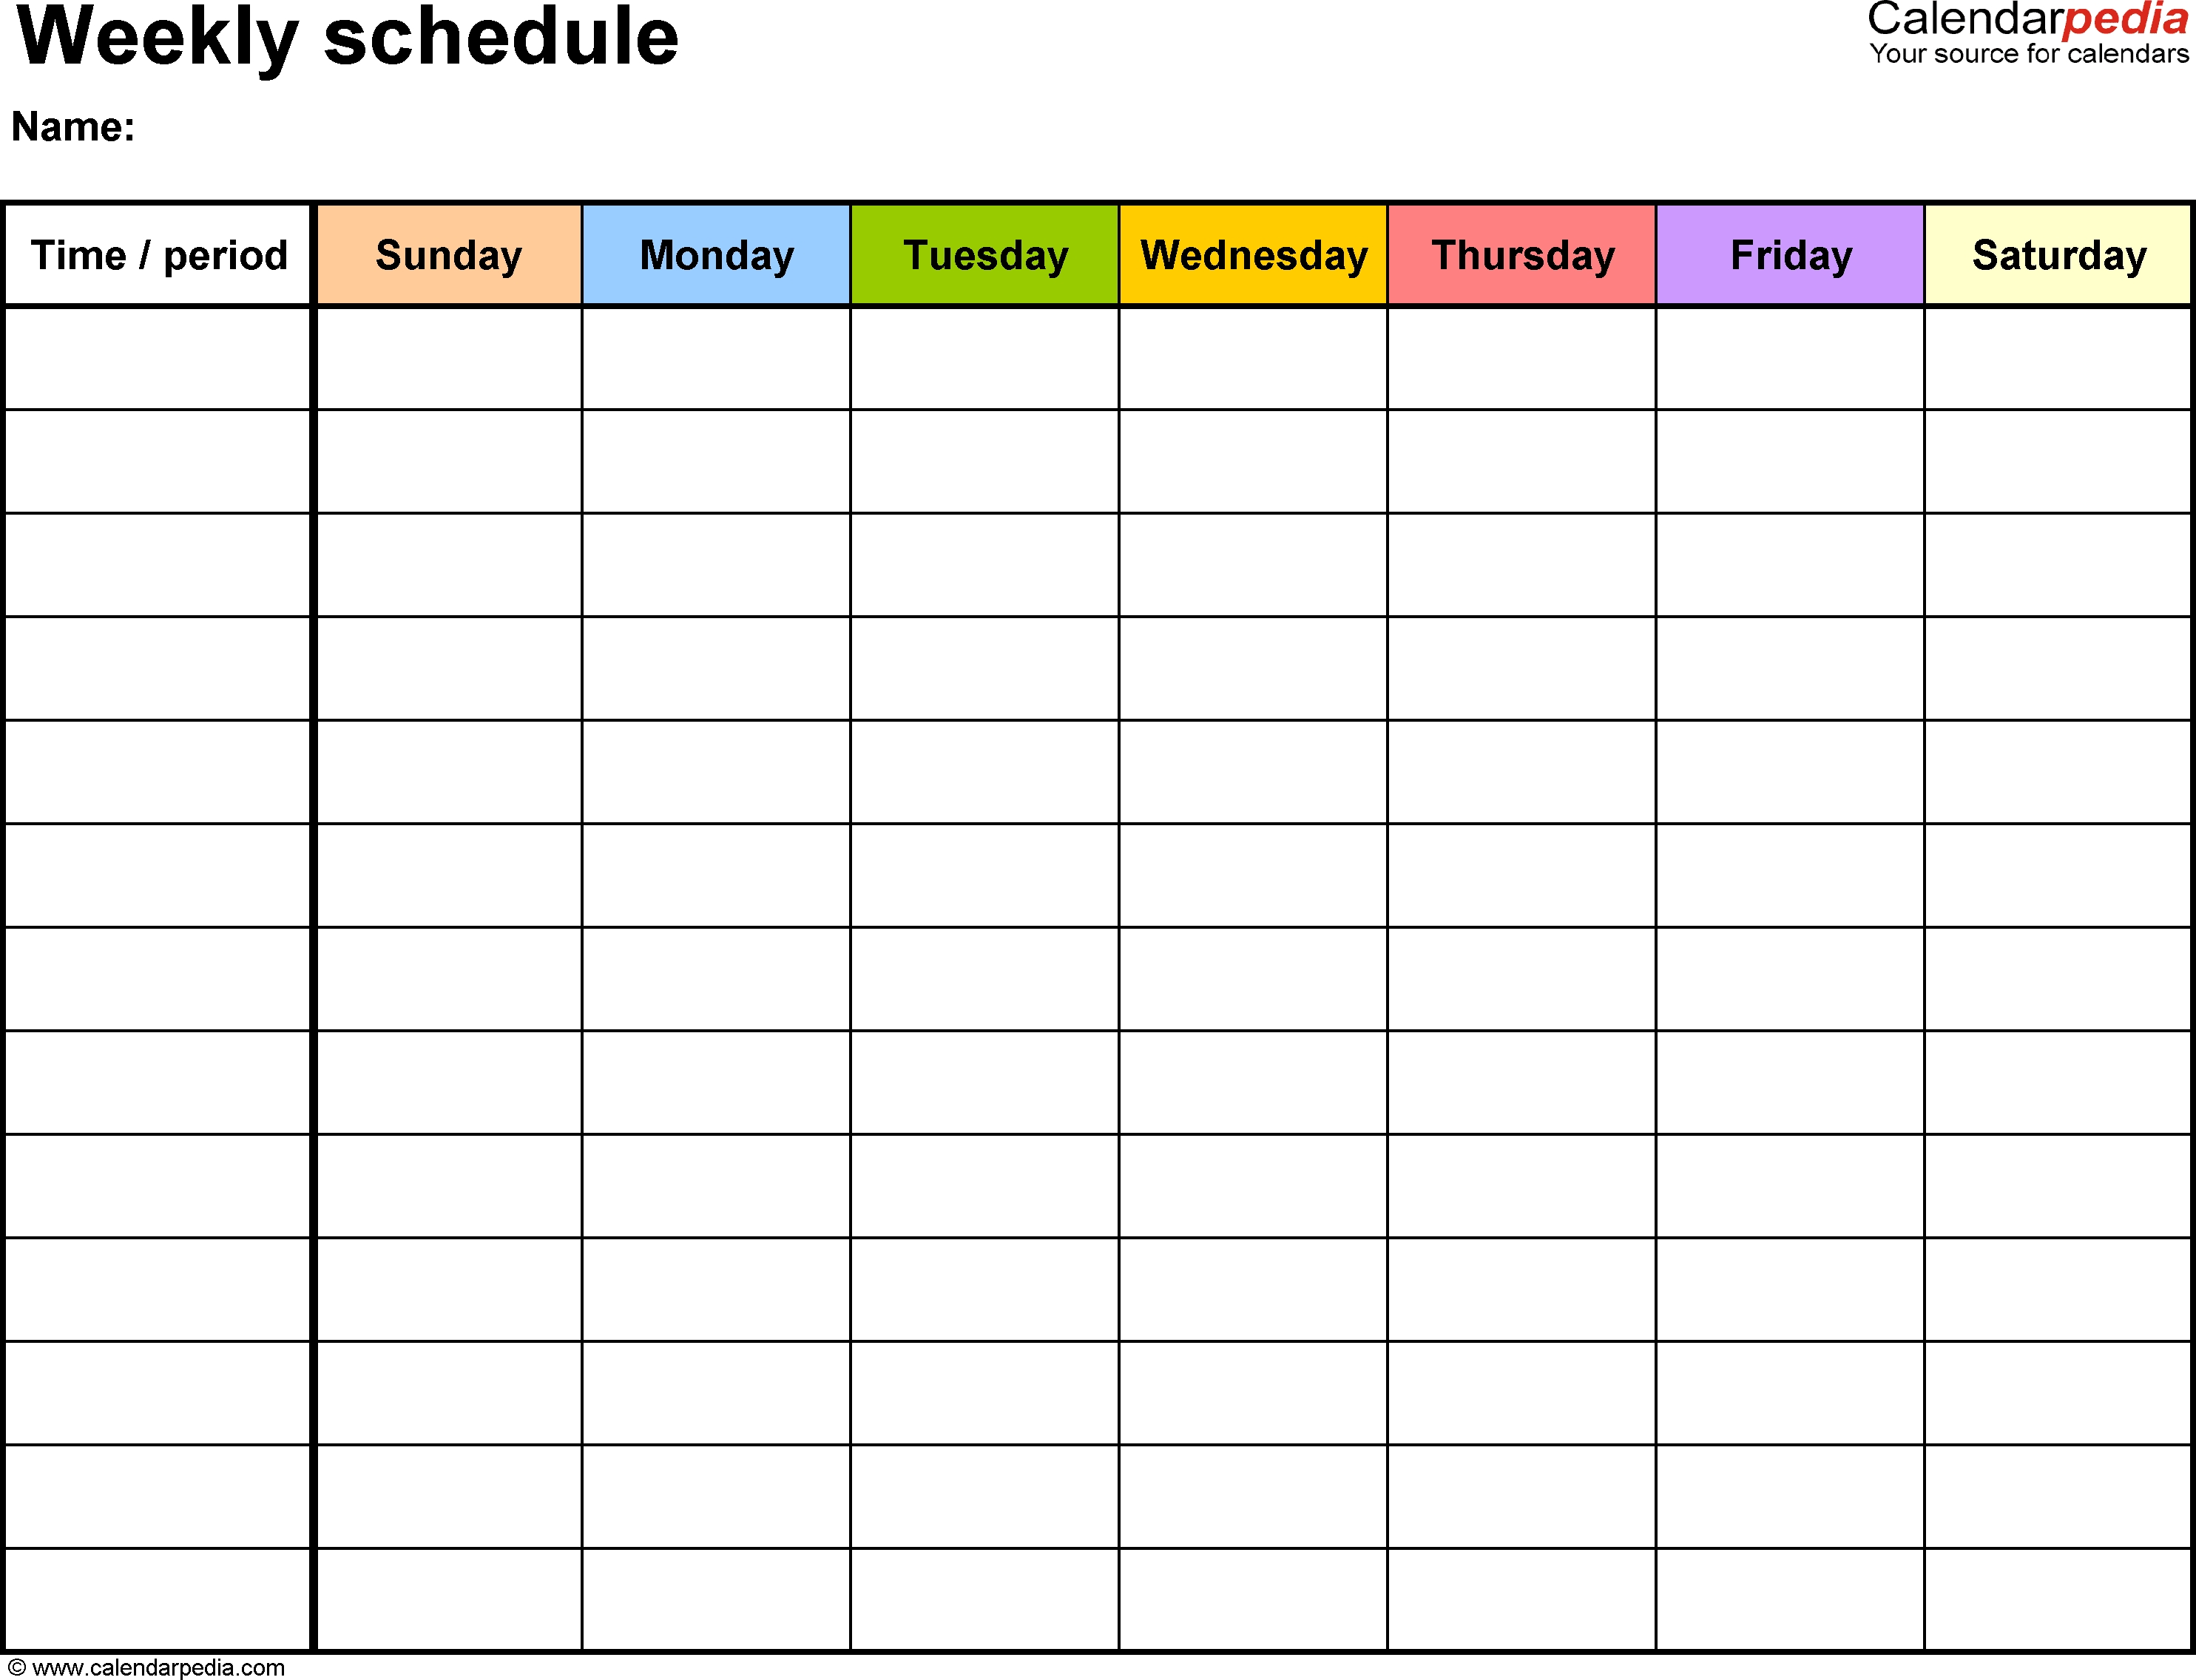 Free Weekly Schedule Templates For Excel - 18 Templates with One Year Calendar Lesson Plan Templates